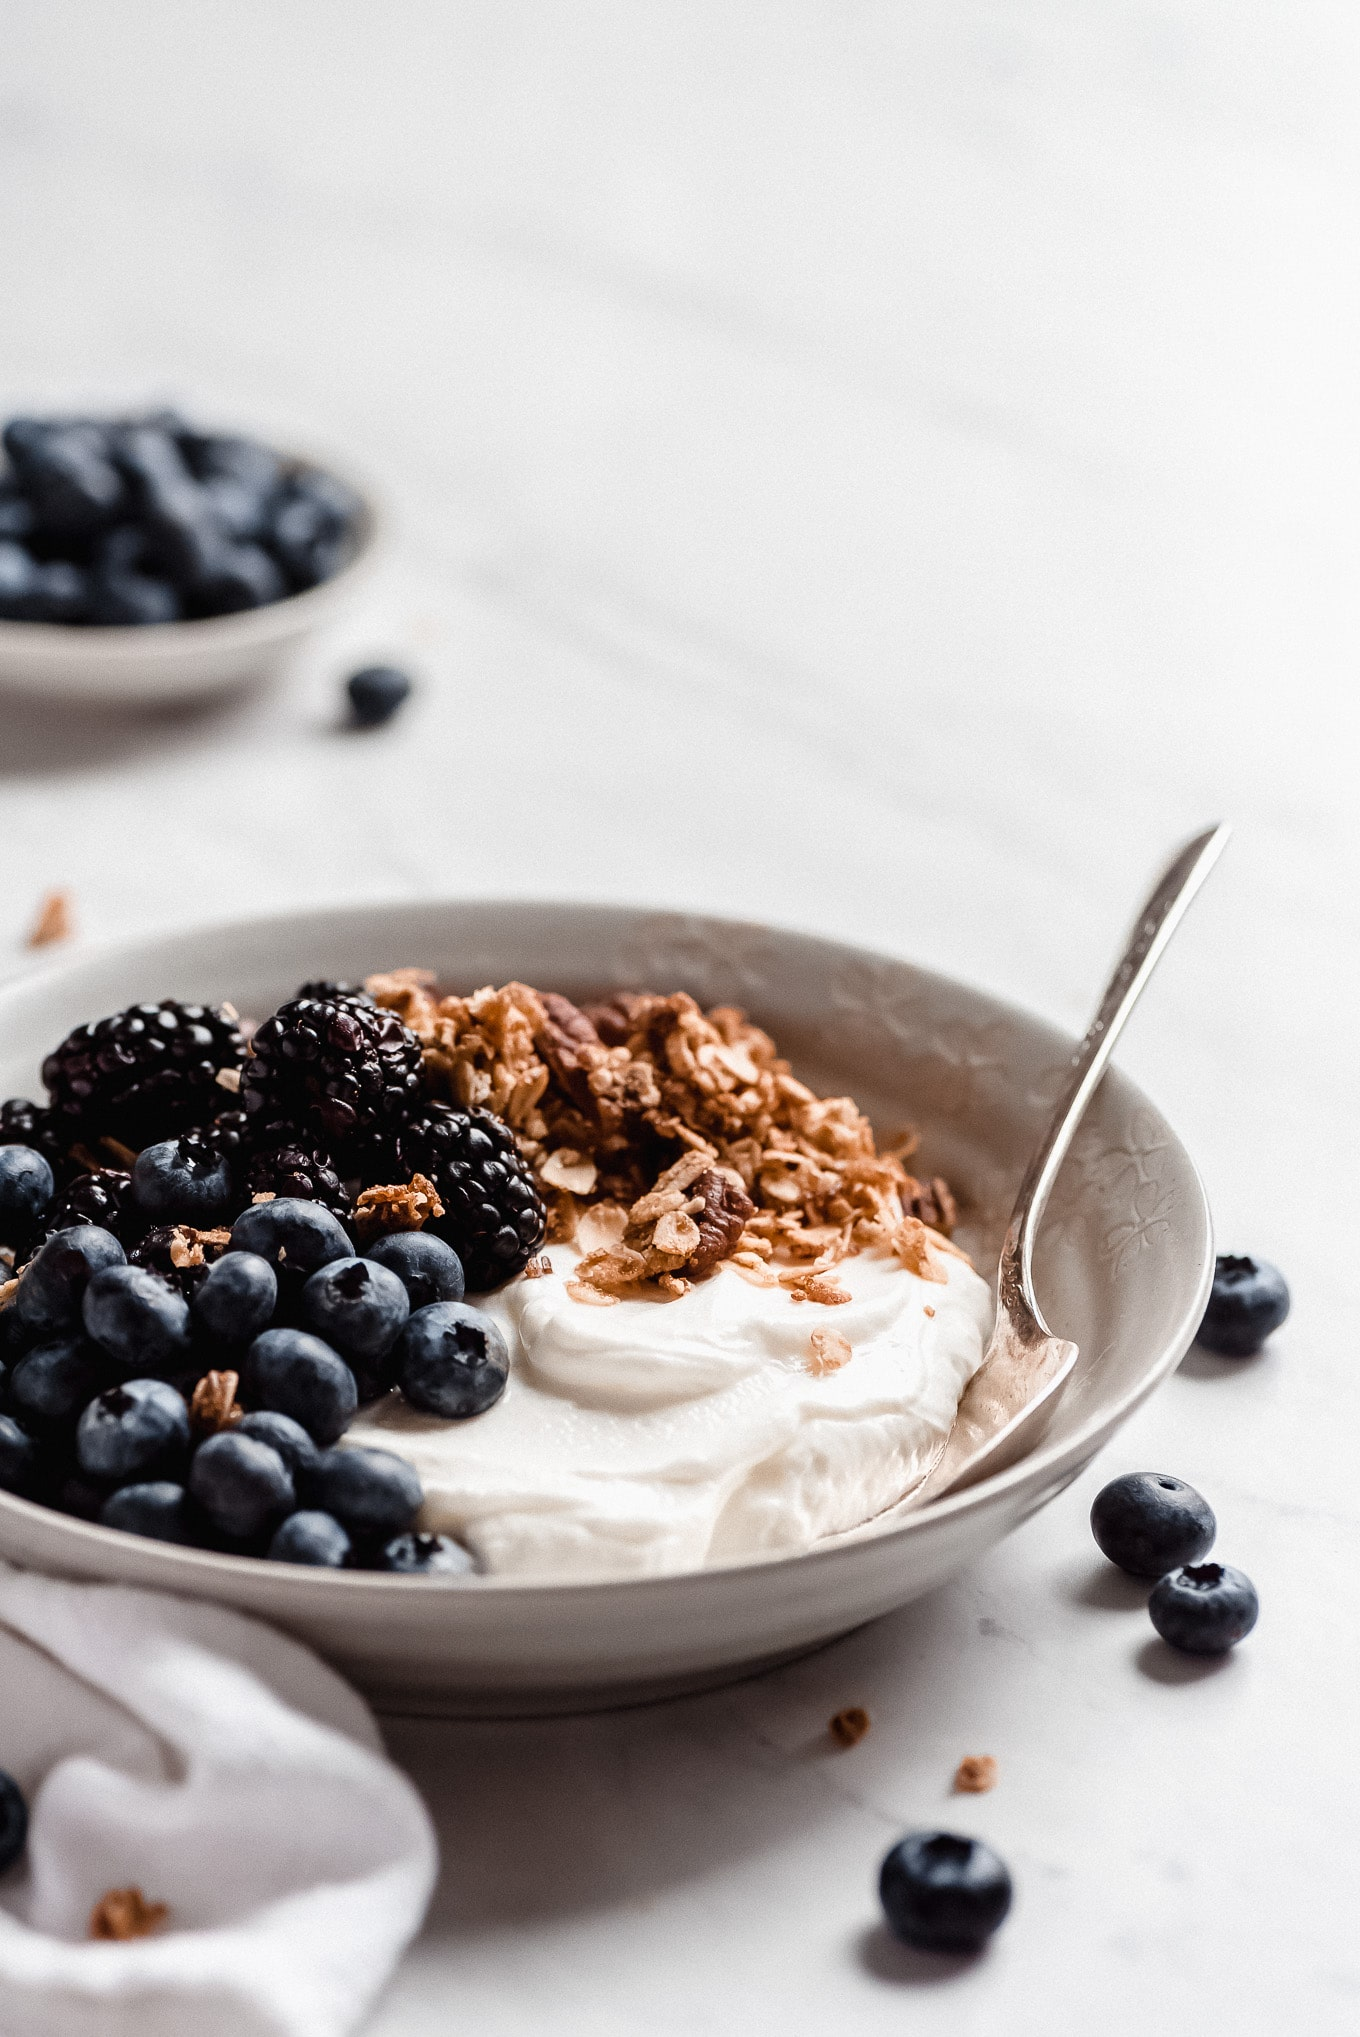 A bowl of plain Greek yogurt, topped with blackberries, blueberries, and granola.